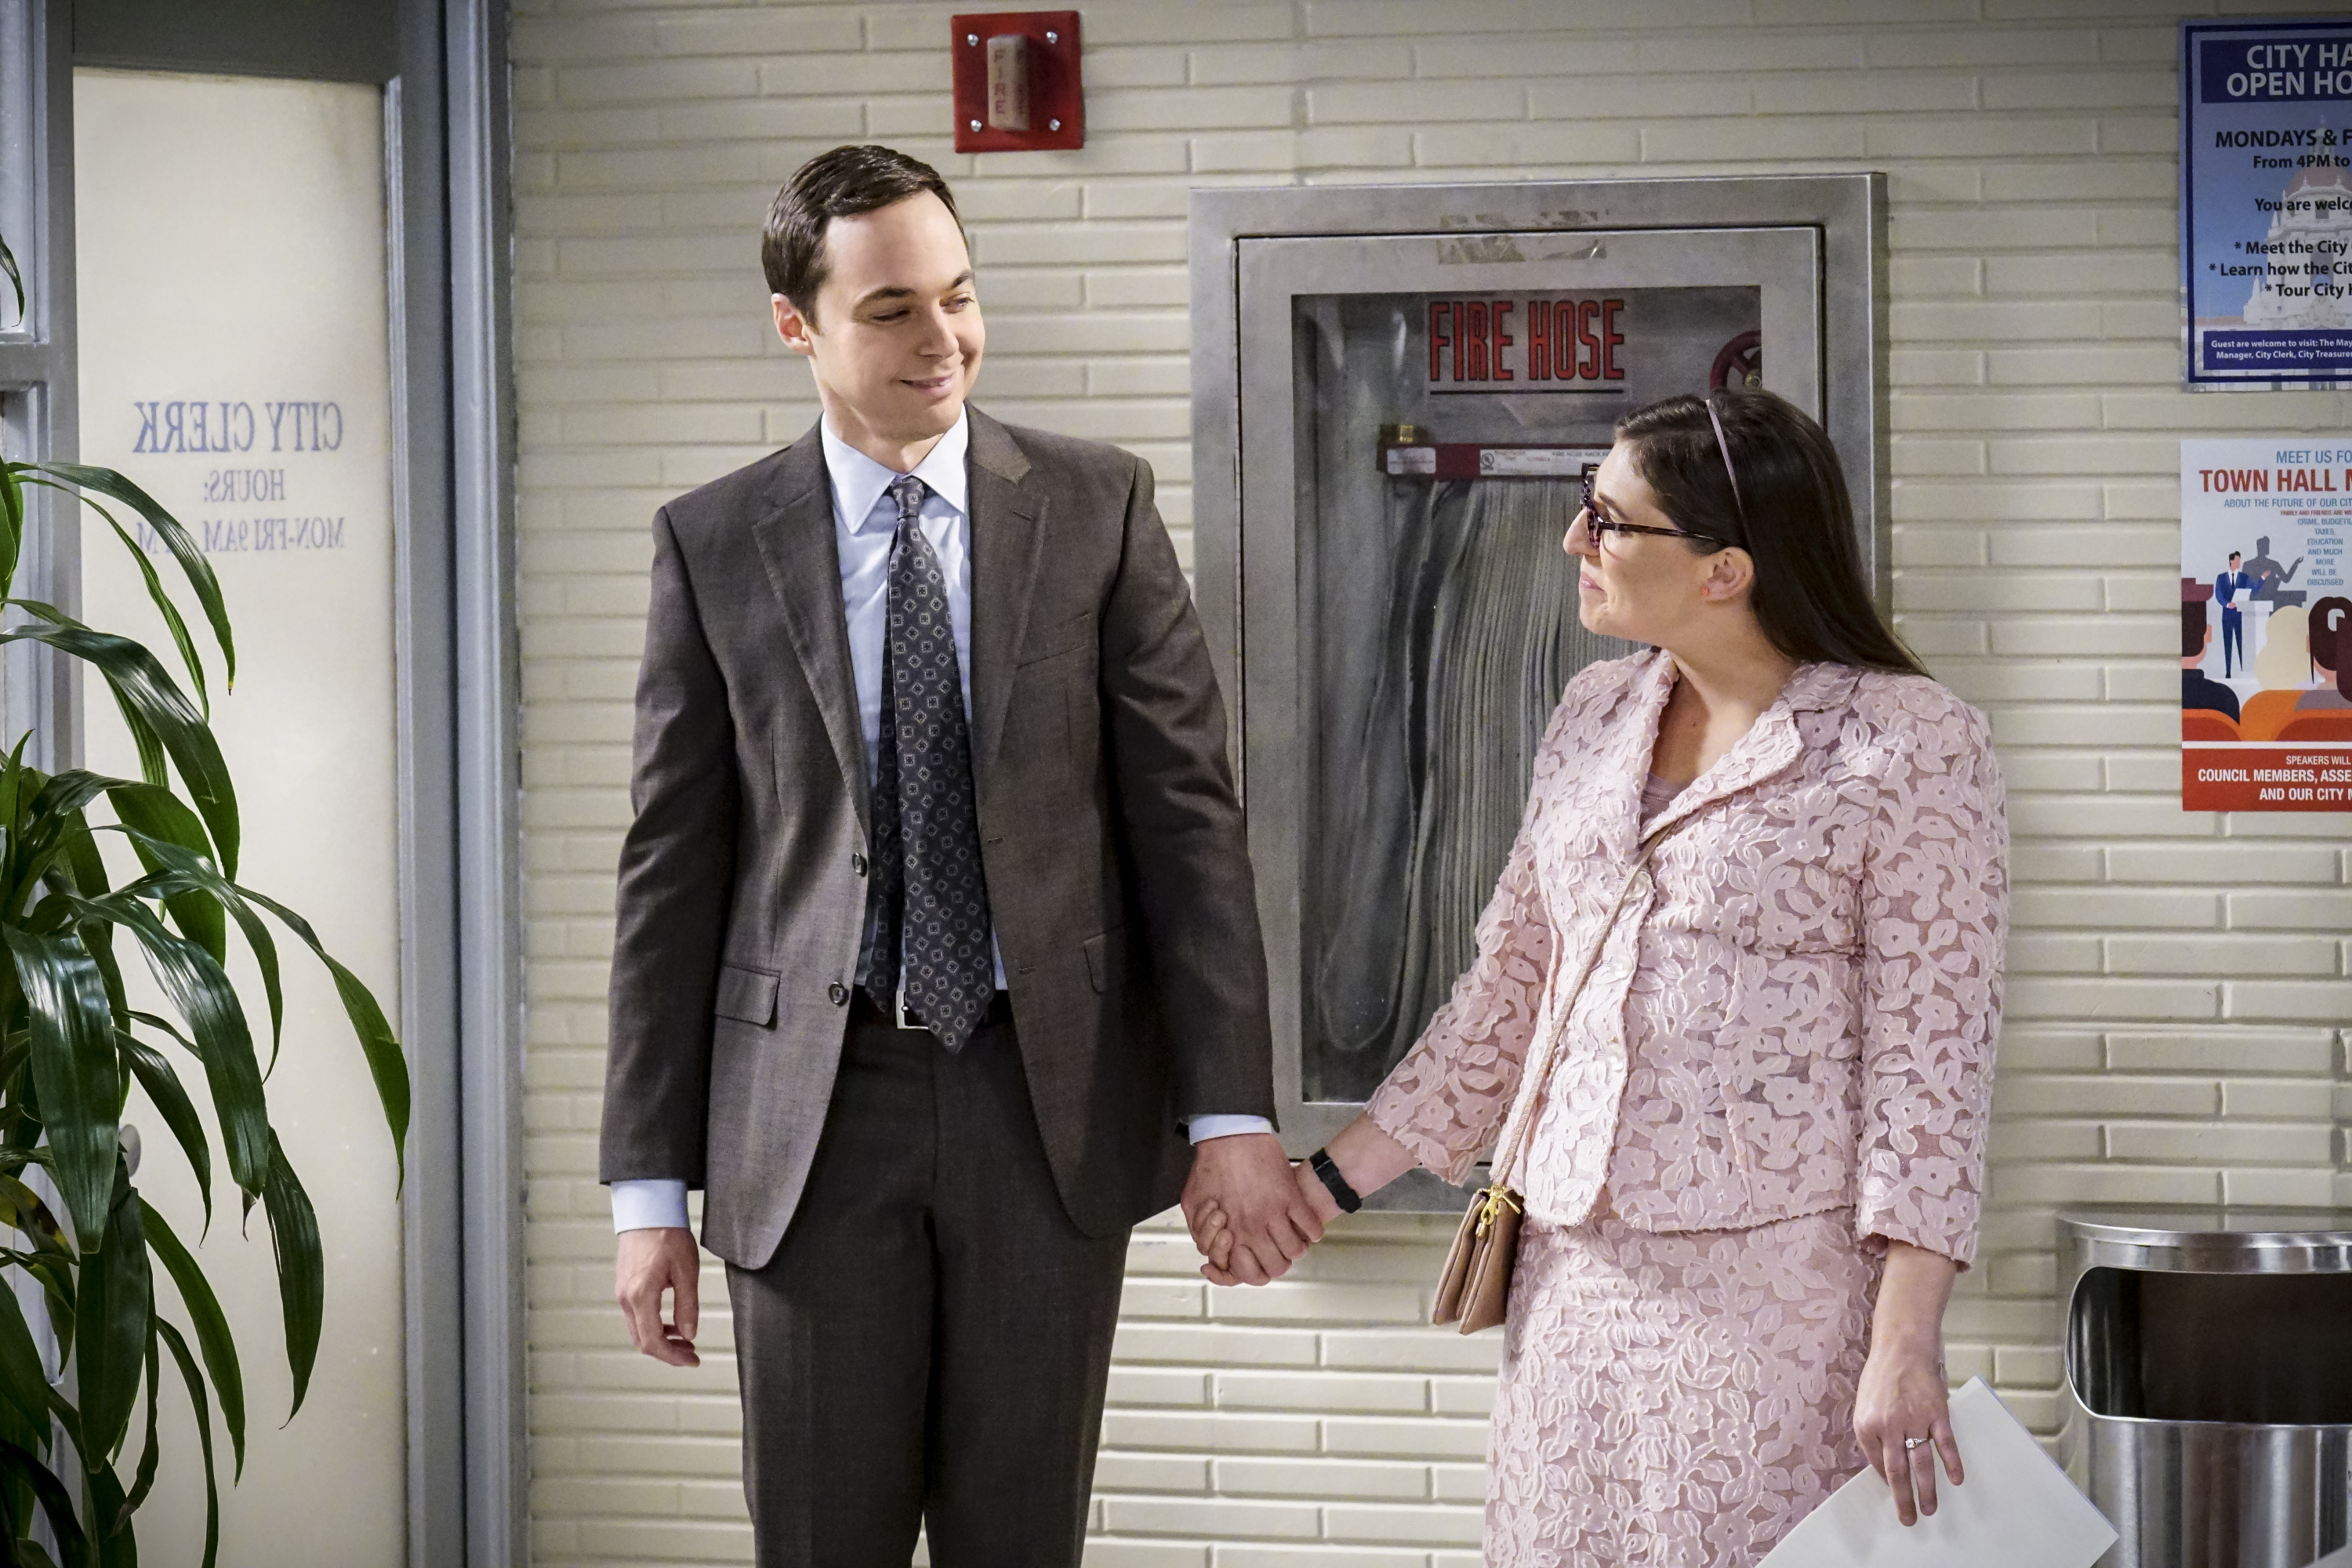 """LOS ANGELES - NOVEMBER 14: """"The Confidence Erosion"""" -- Pictured: Sheldon Cooper (Jim Parsons) and Amy Farrah Fowler (Mayim Bialik). Sheldon and Amy try to eliminate stress from wedding planning by applying math to the process. Also, Koothrappali """"breaks up"""" with Wolowitz after realizing his best friend is actually hurting his confidence, on THE BIG BANG THEORY, Thursday, Dec. 7 (8:00-8:31 PM, ET/PT) on the CBS Television Network. (Photo by Monty Brinton/CBS via Getty Images) Getty, TL"""